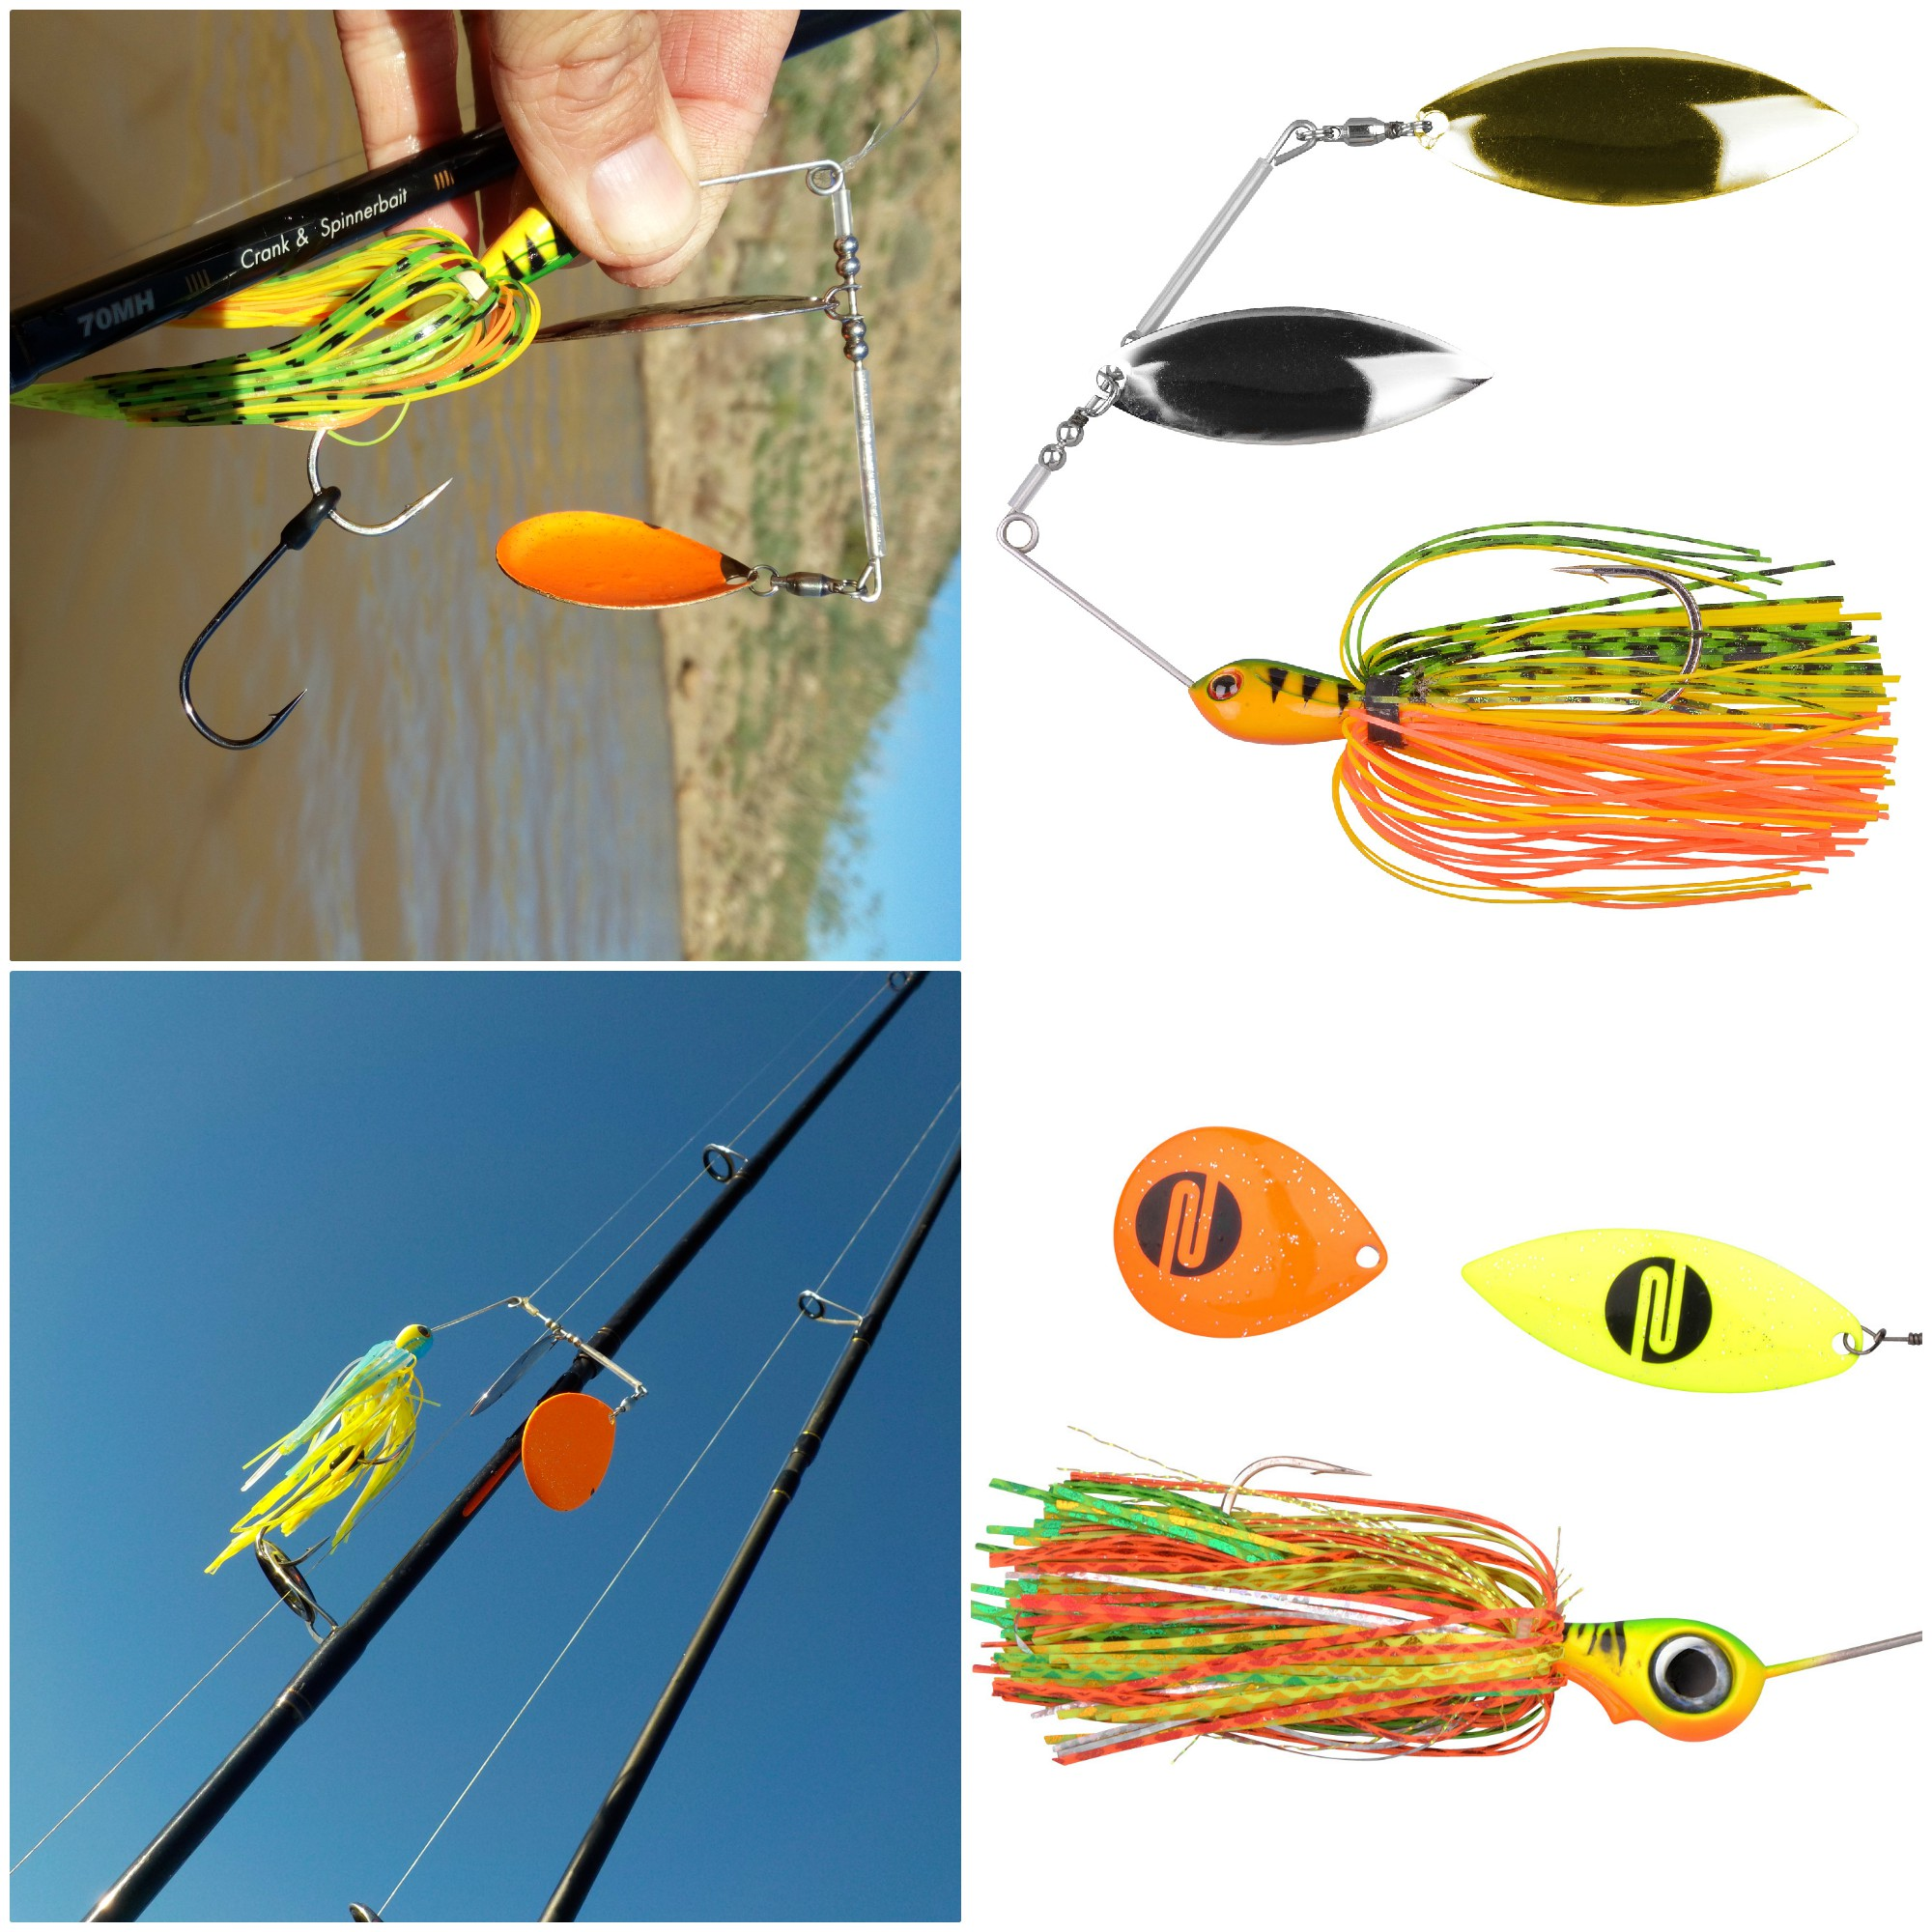 The Iris Ambush spinnerbait from Spro NL comes with an extra blade.